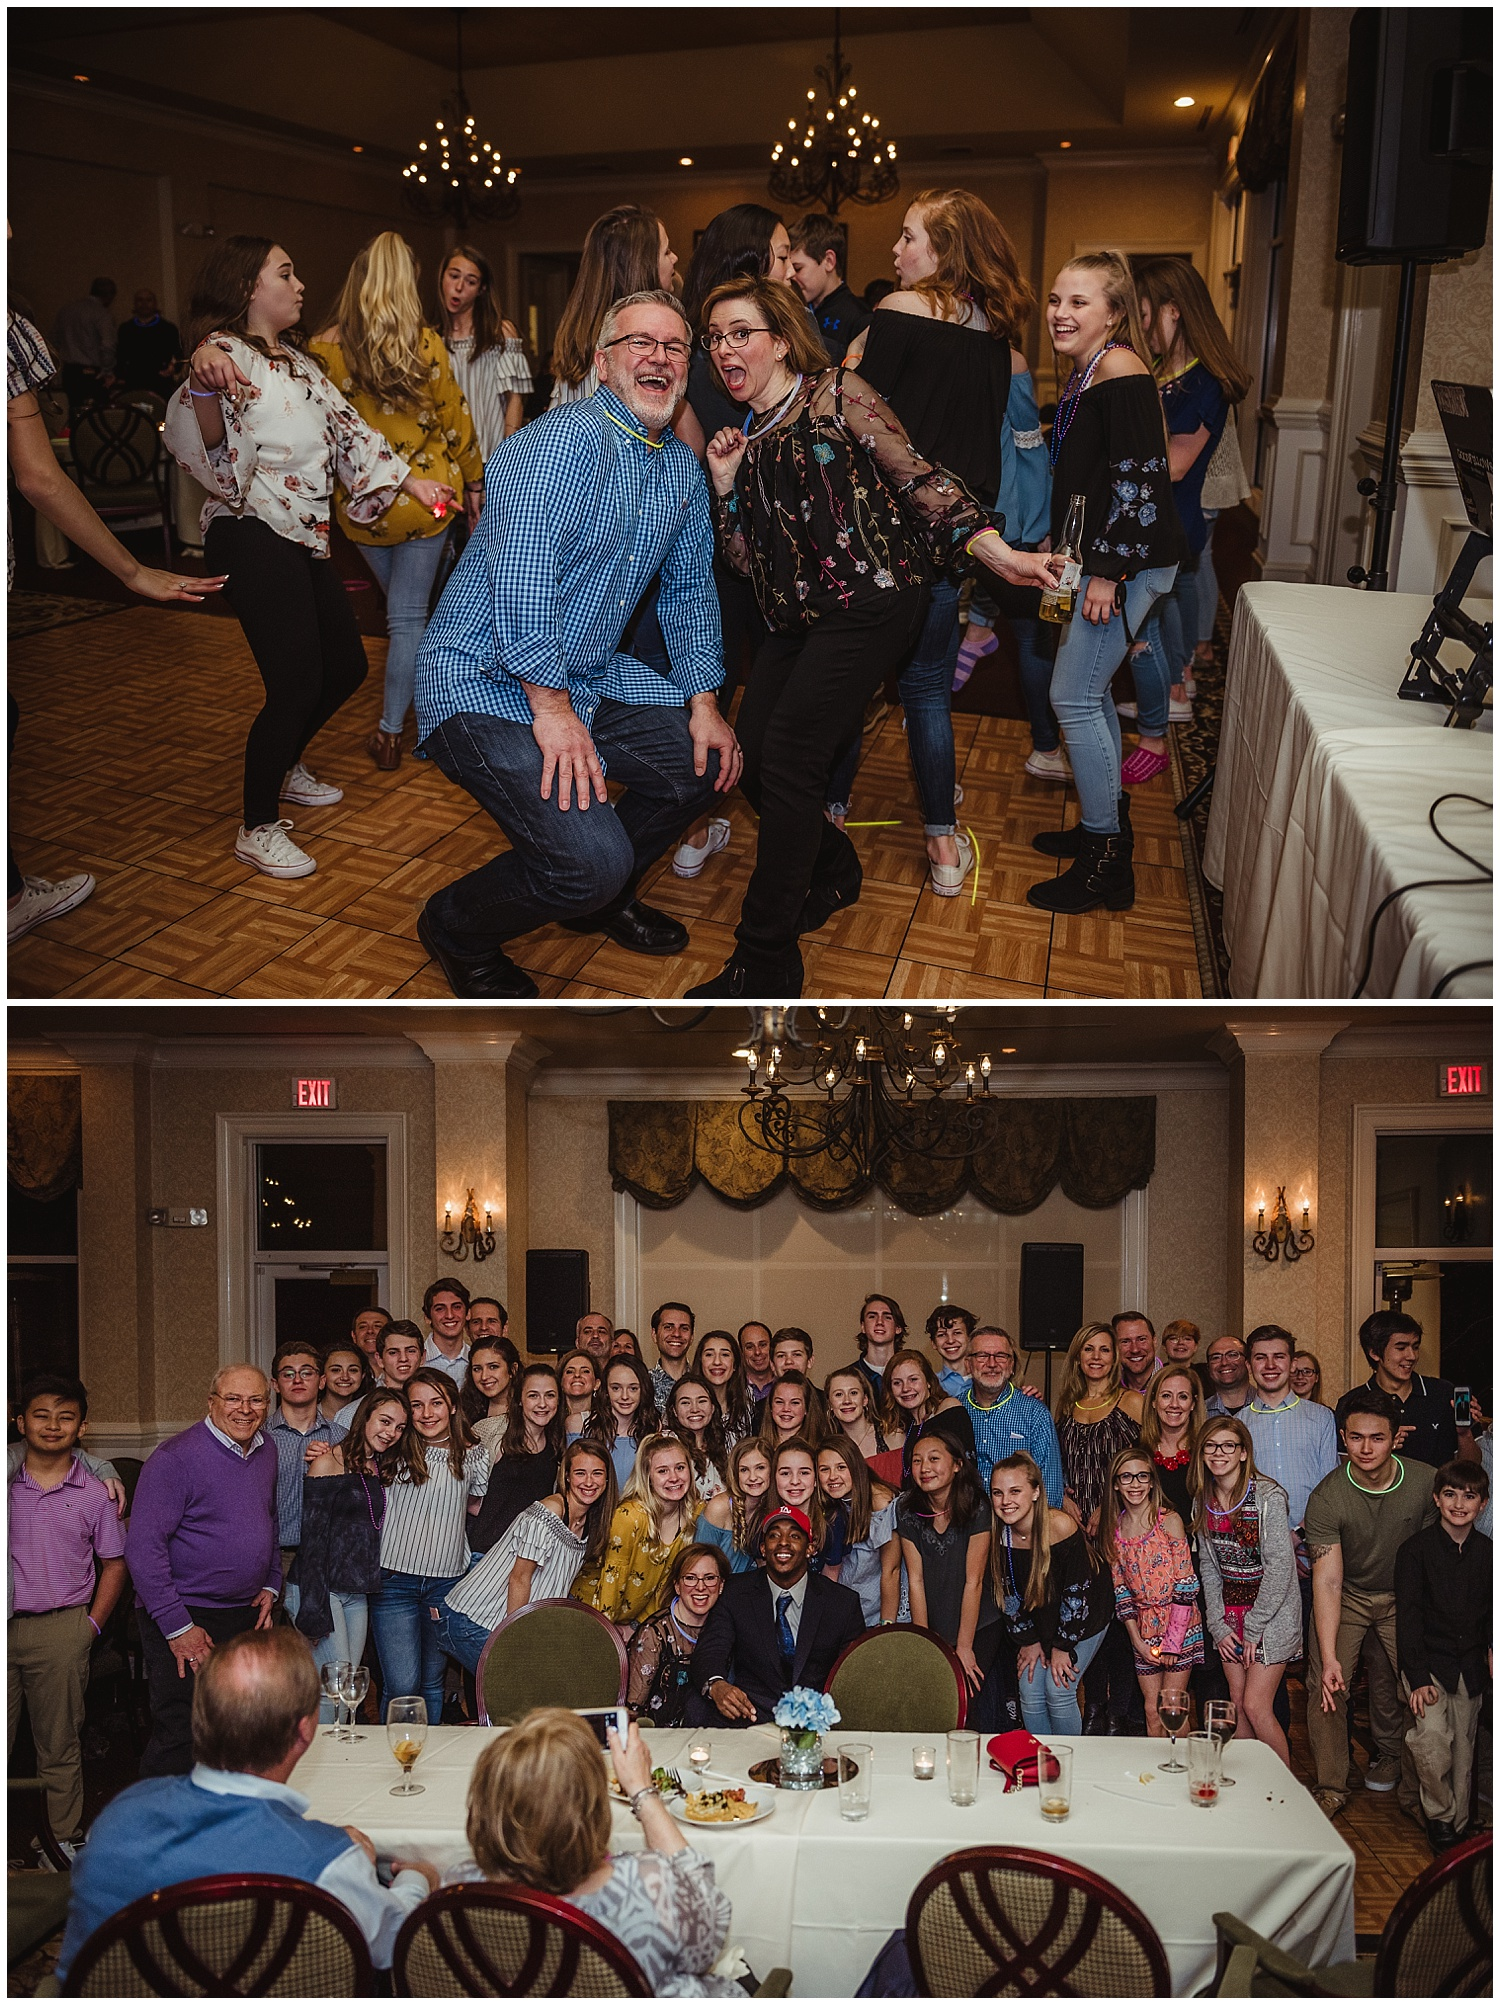 Guests pose for a group picture with Rose Trail Images during the mitzvah reception party at the Brier Creek Country Club in Raleigh, NC.